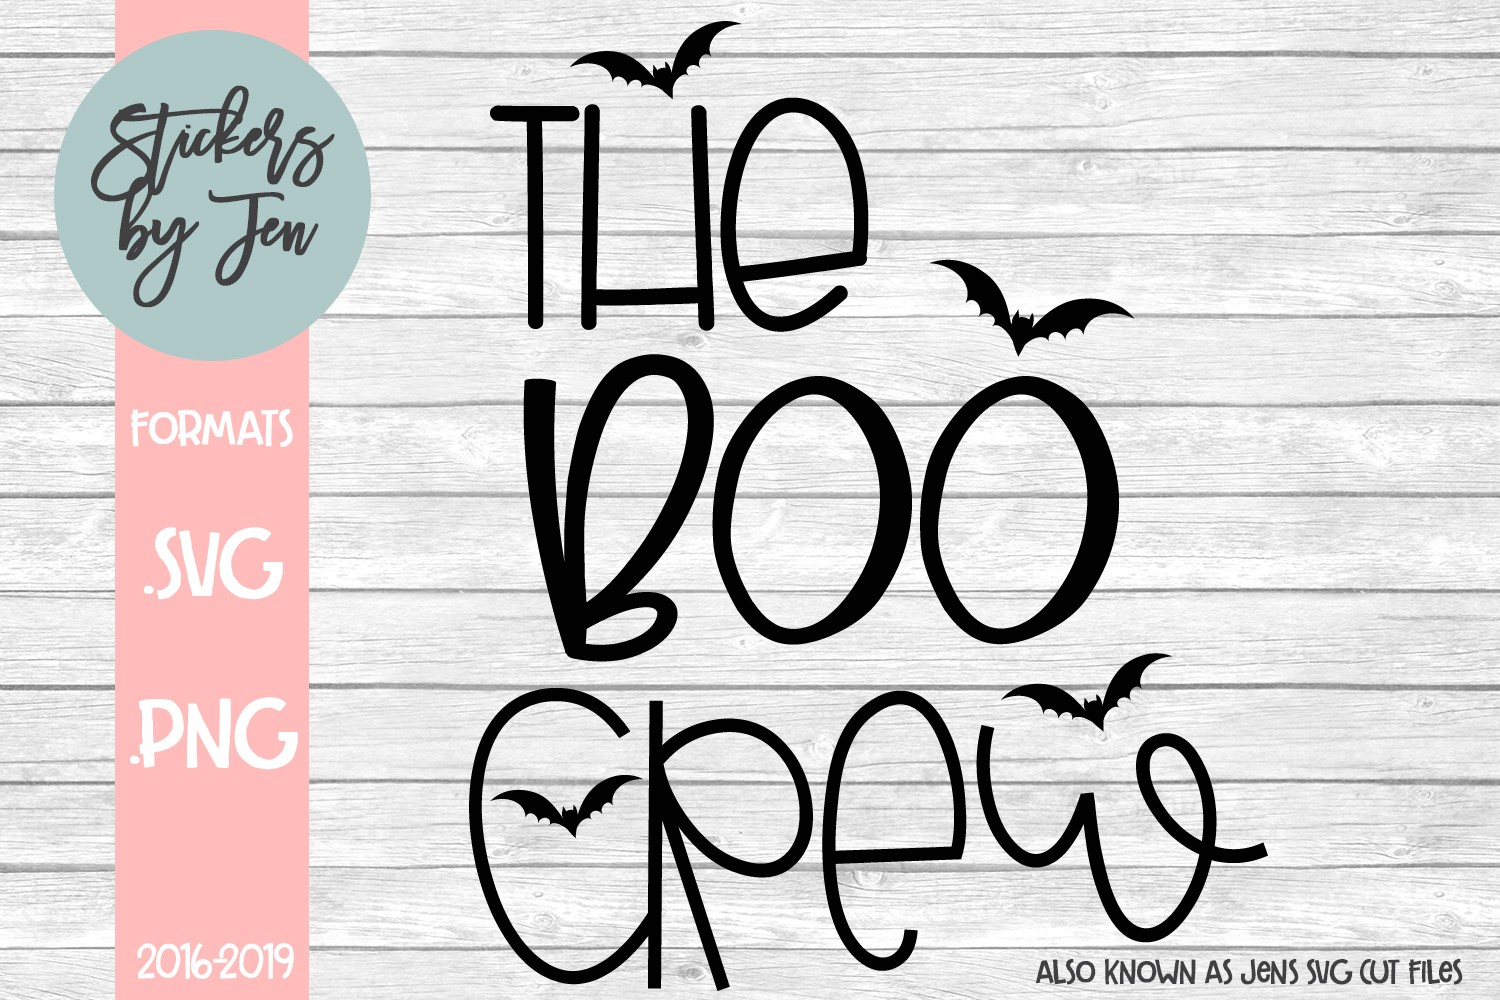 Download Free The Boo Crew Graphic By Stickers By Jennifer Creative Fabrica for Cricut Explore, Silhouette and other cutting machines.